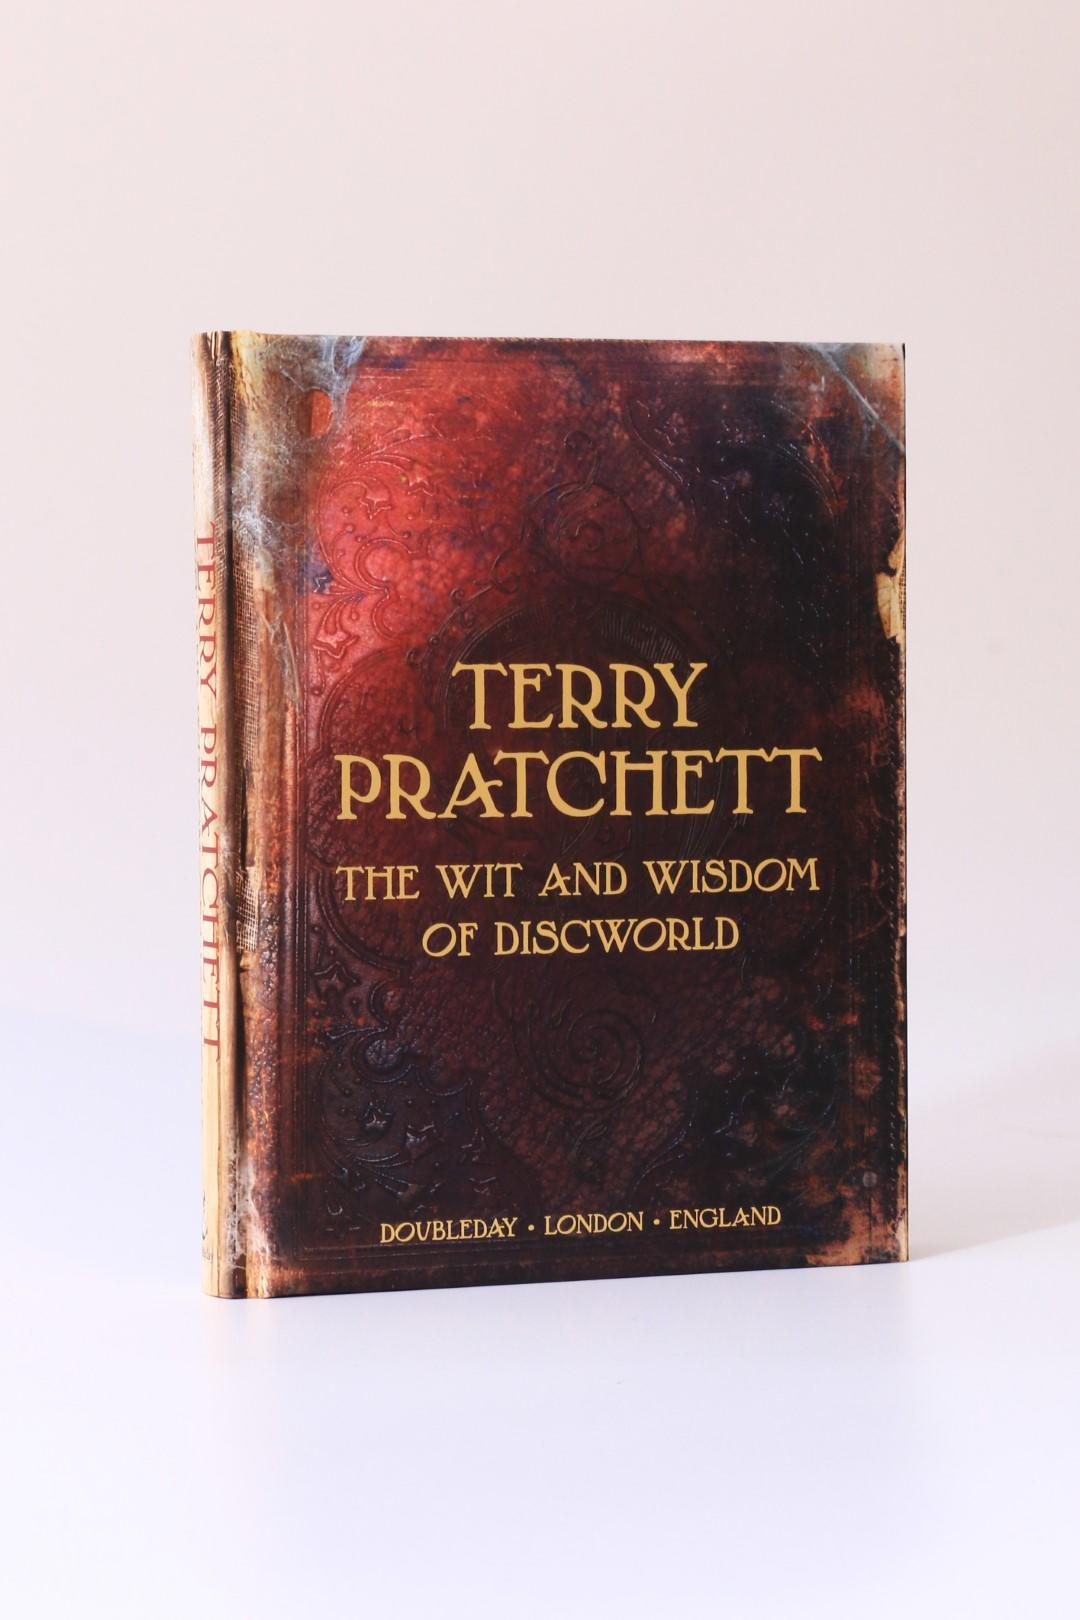 Terry Pratchett [Stephen Briggs] - The Wit and Wisdom of Discworld - Doubleday, 2007, First Edition.